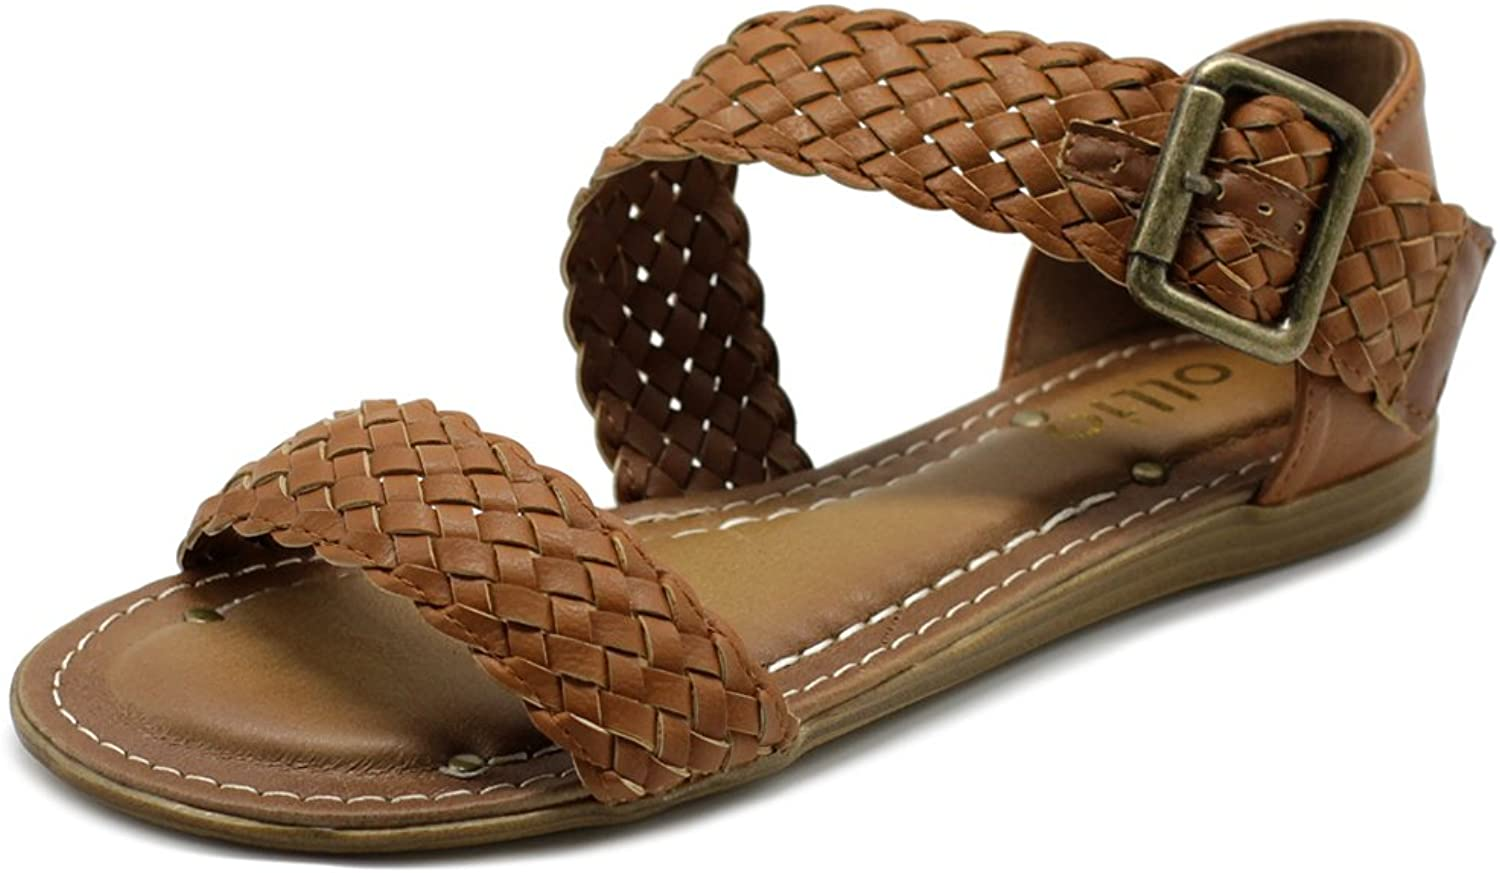 Ollio Womens shoes Braided Side Buckle Accent Multi color Flat Sandal M1966 (7.5 B(M) US, Brown)